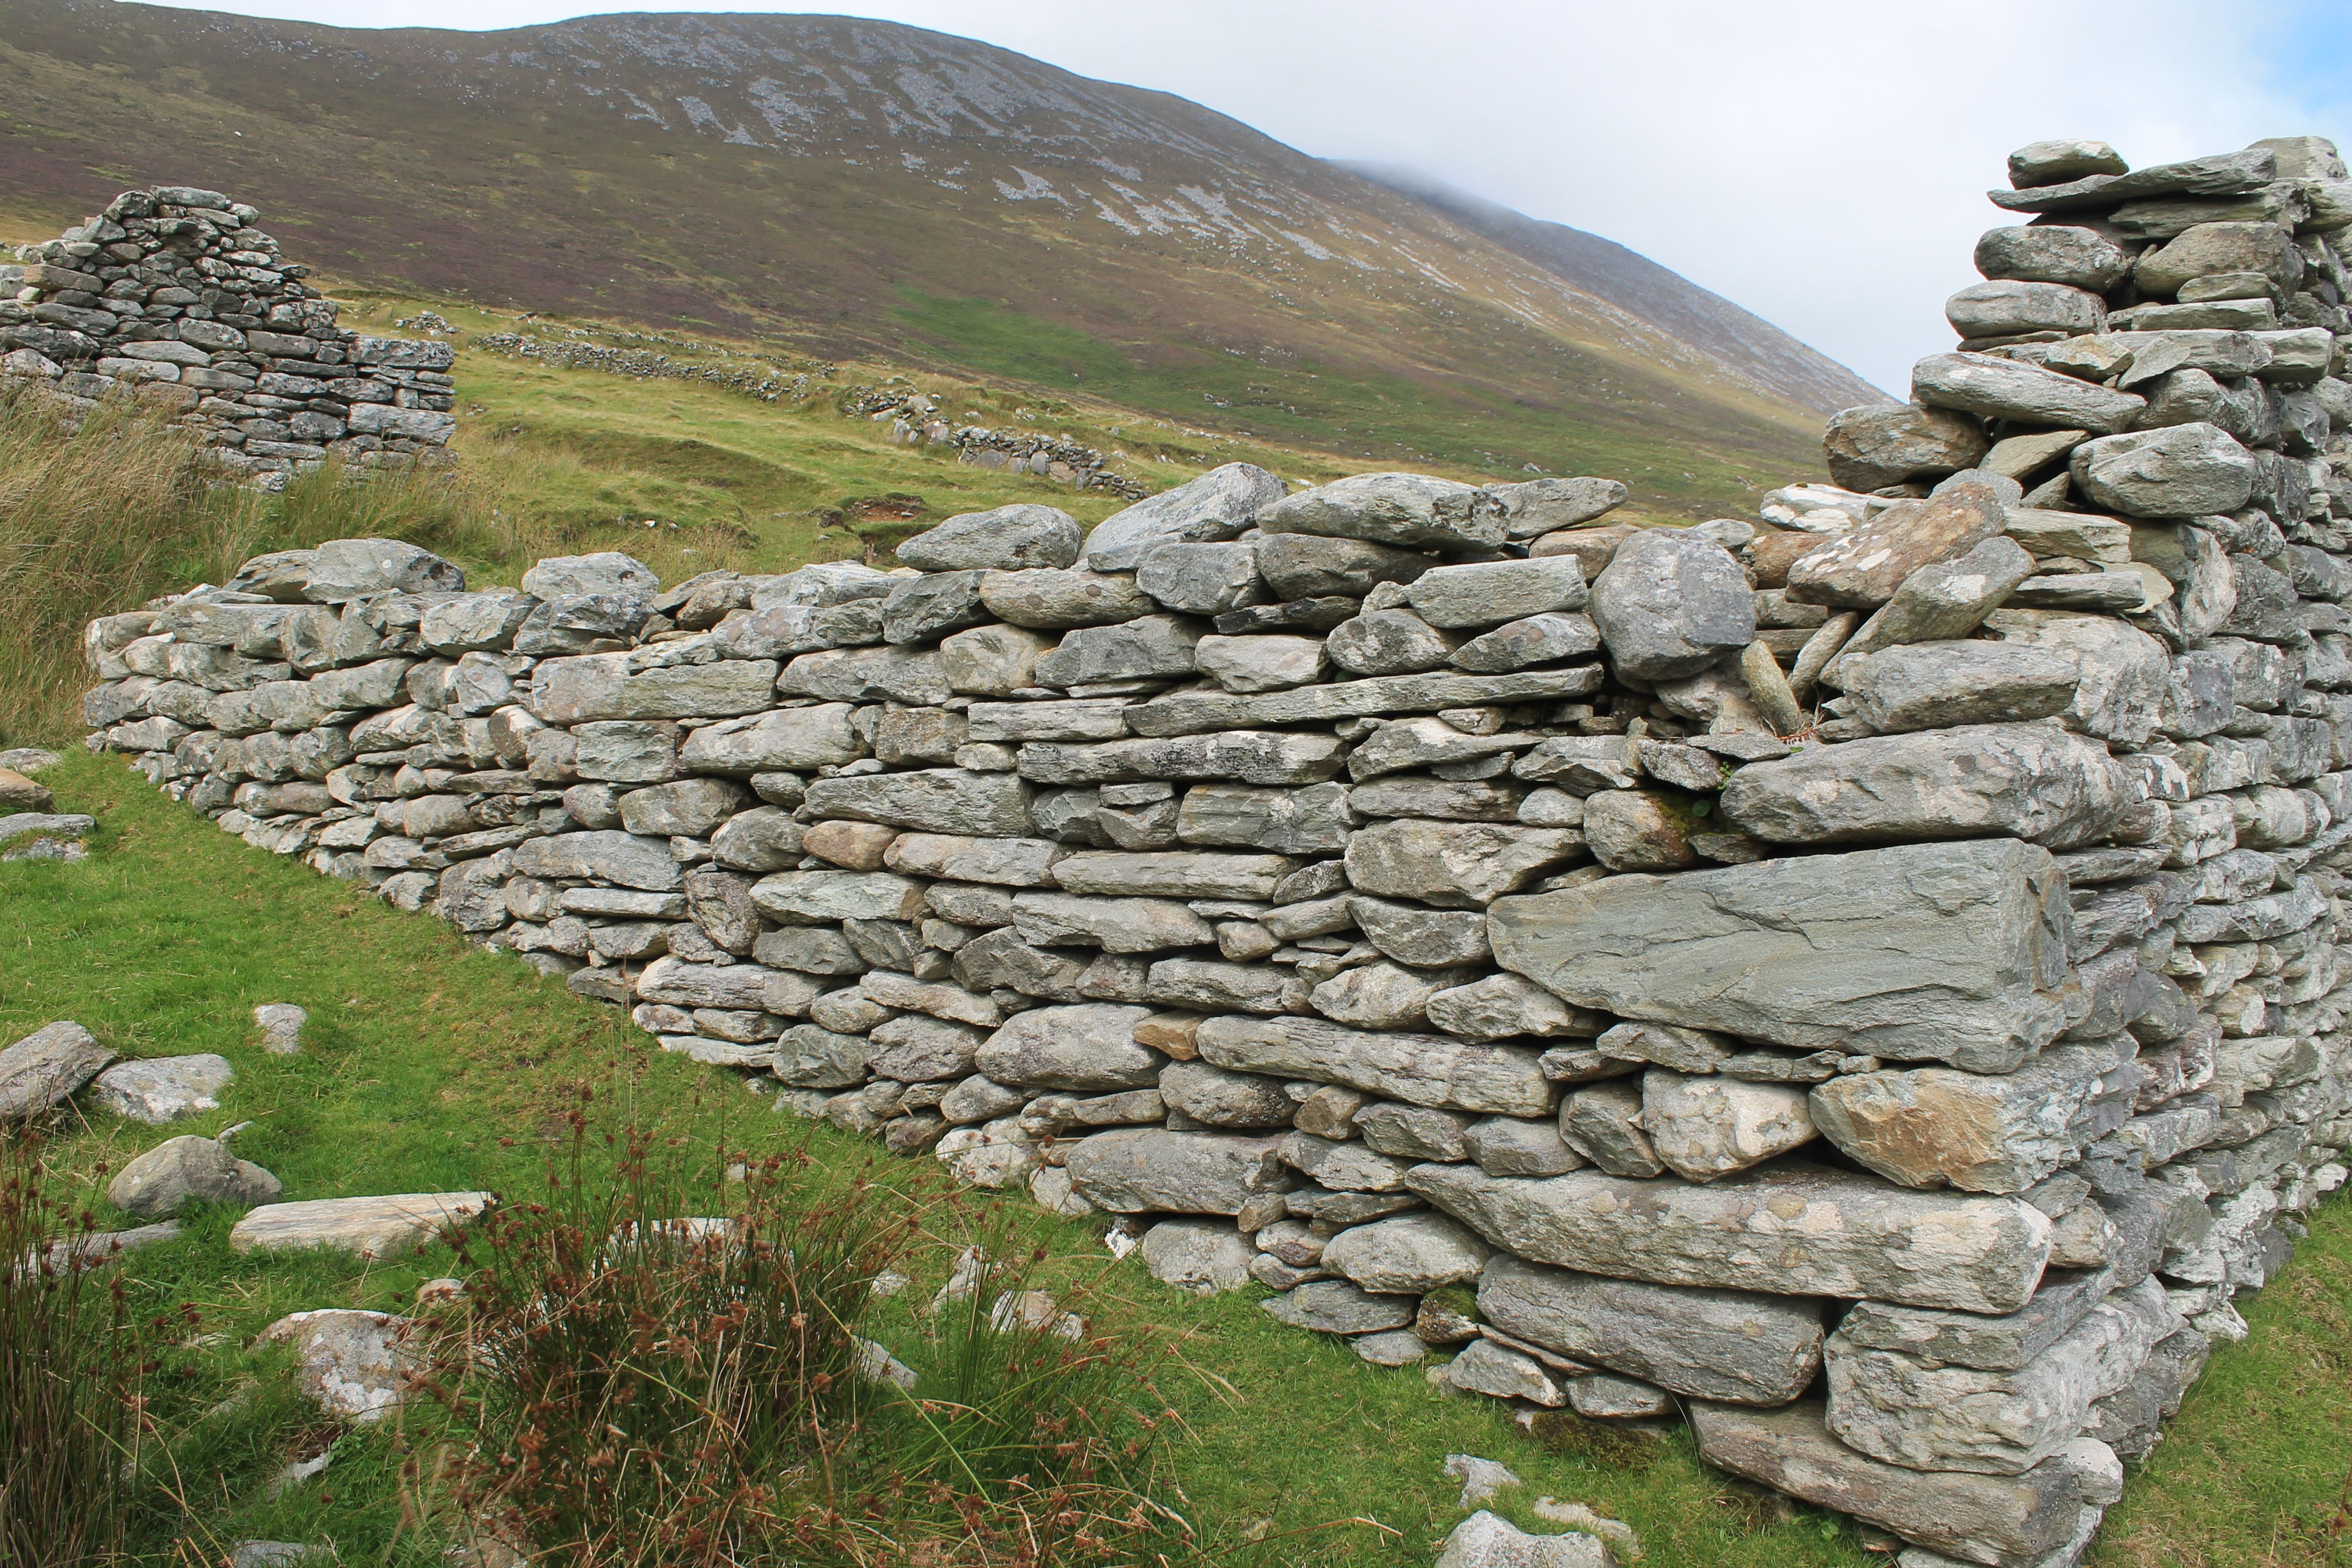 At the base of Slievemore mountain, on Achill Island, Ireland, lies the Deserted Village. There are approximately 80 ruined houses. https://en.wikipedia.org/wiki/Achill_Island#The_Deserted_Village & http://www.achilltourism.com/deserted.html